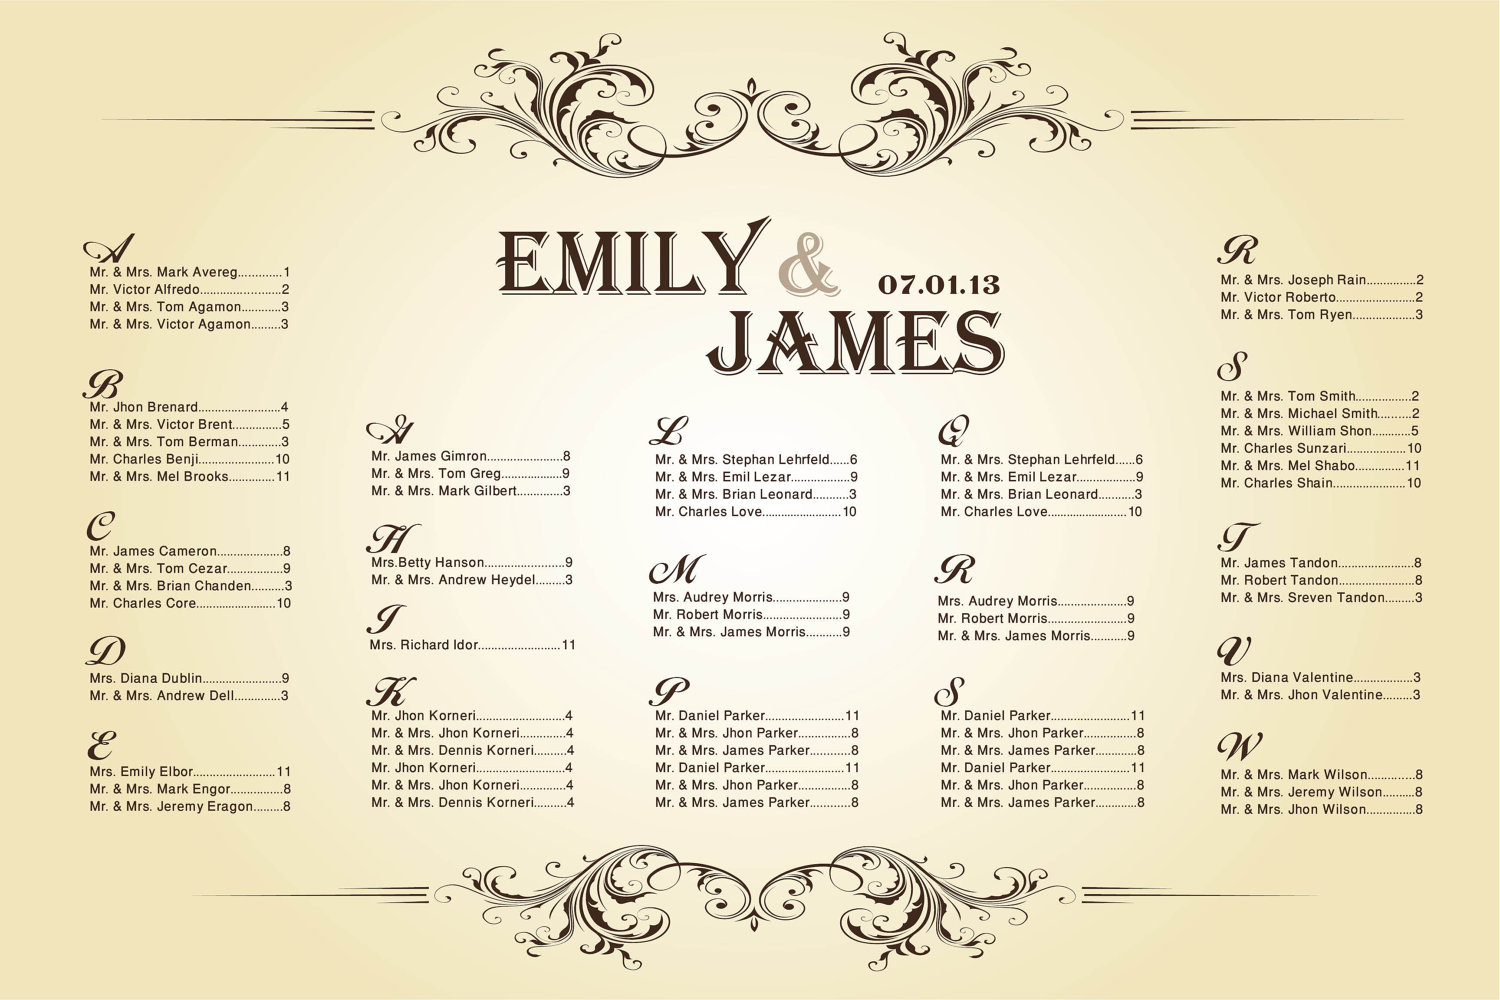 Free Wedding Seating Chart Maker Wedding Photography Website – Free Seating Chart Template for Wedding Reception